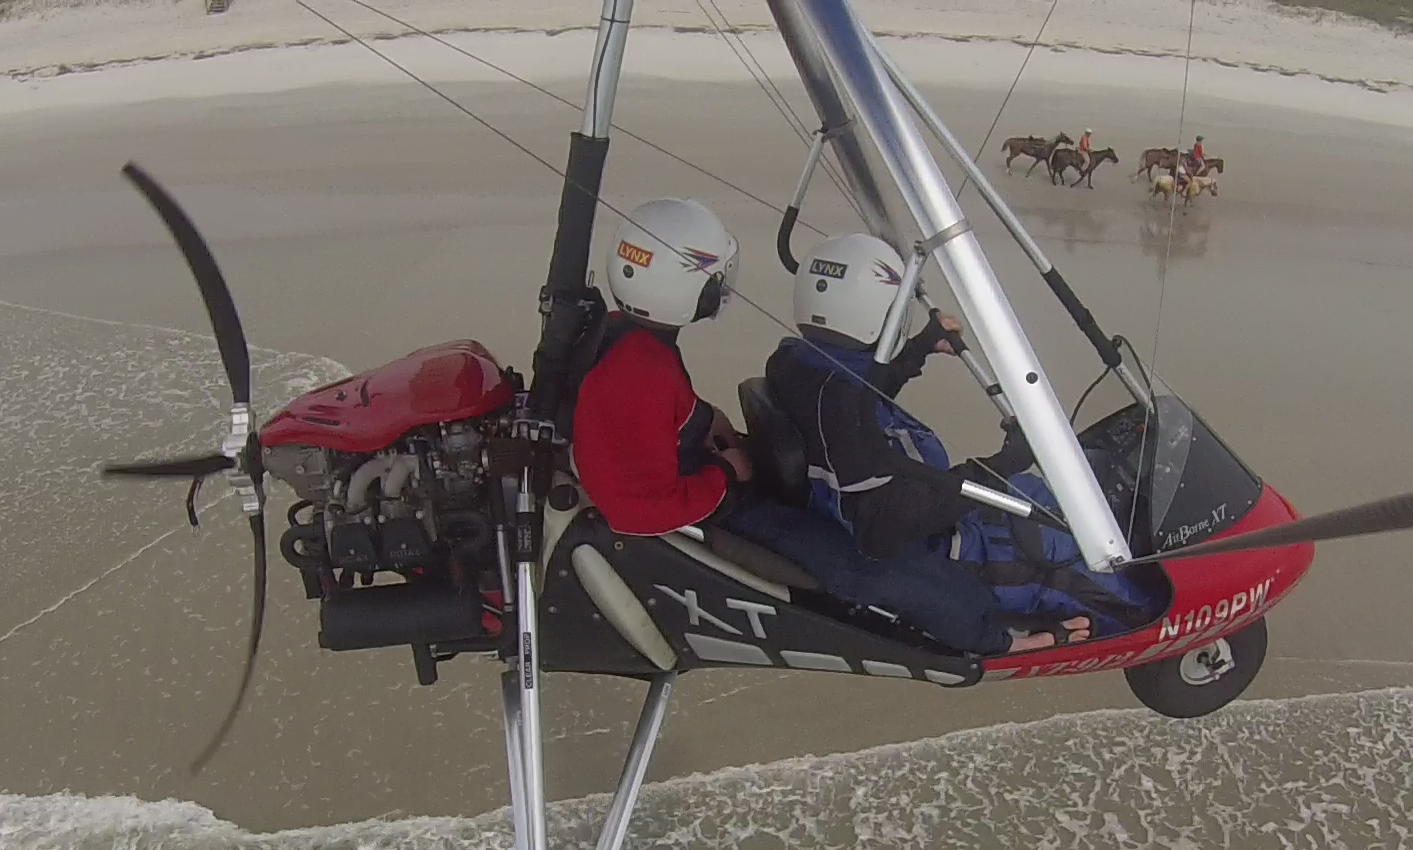 Will Stanwick getting a great birds-eye view of the horseback riders on the beach!  ---------------------------------- 877-WEDOFLY